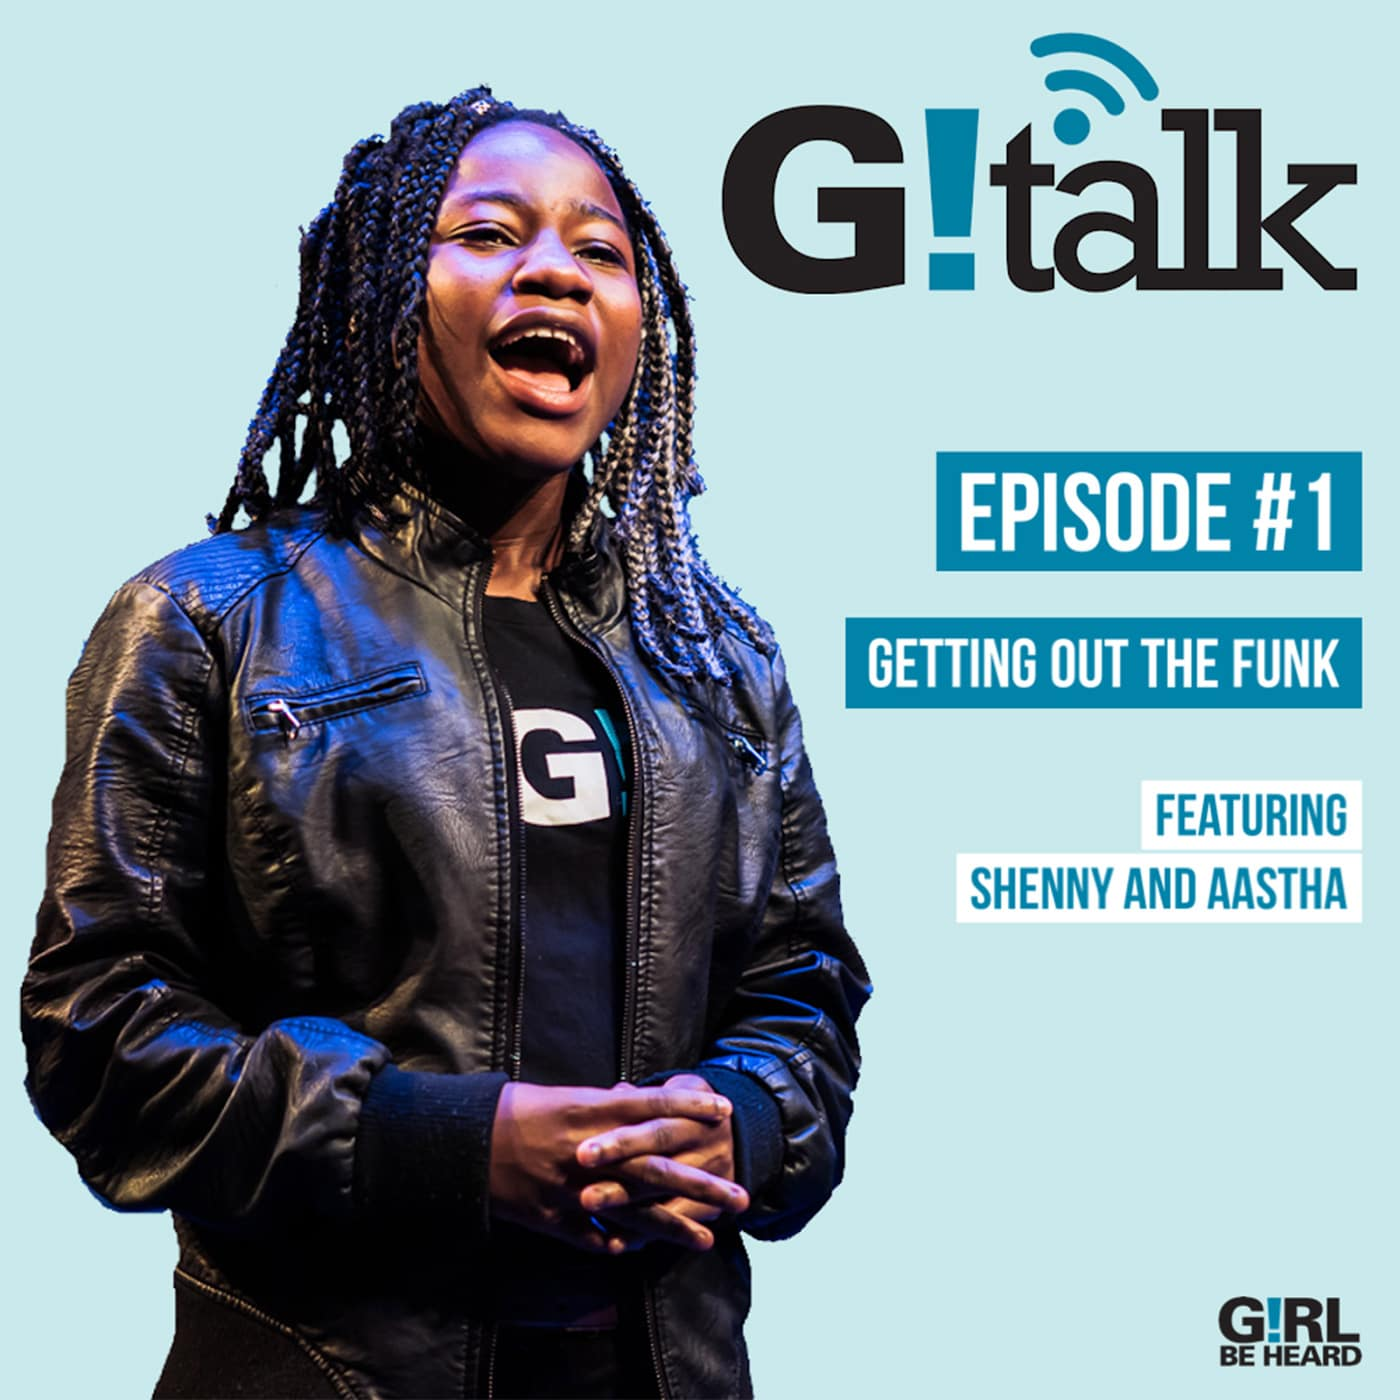 GIRL BE HEARD G!TALK Episode 1 Getting Out The Funk